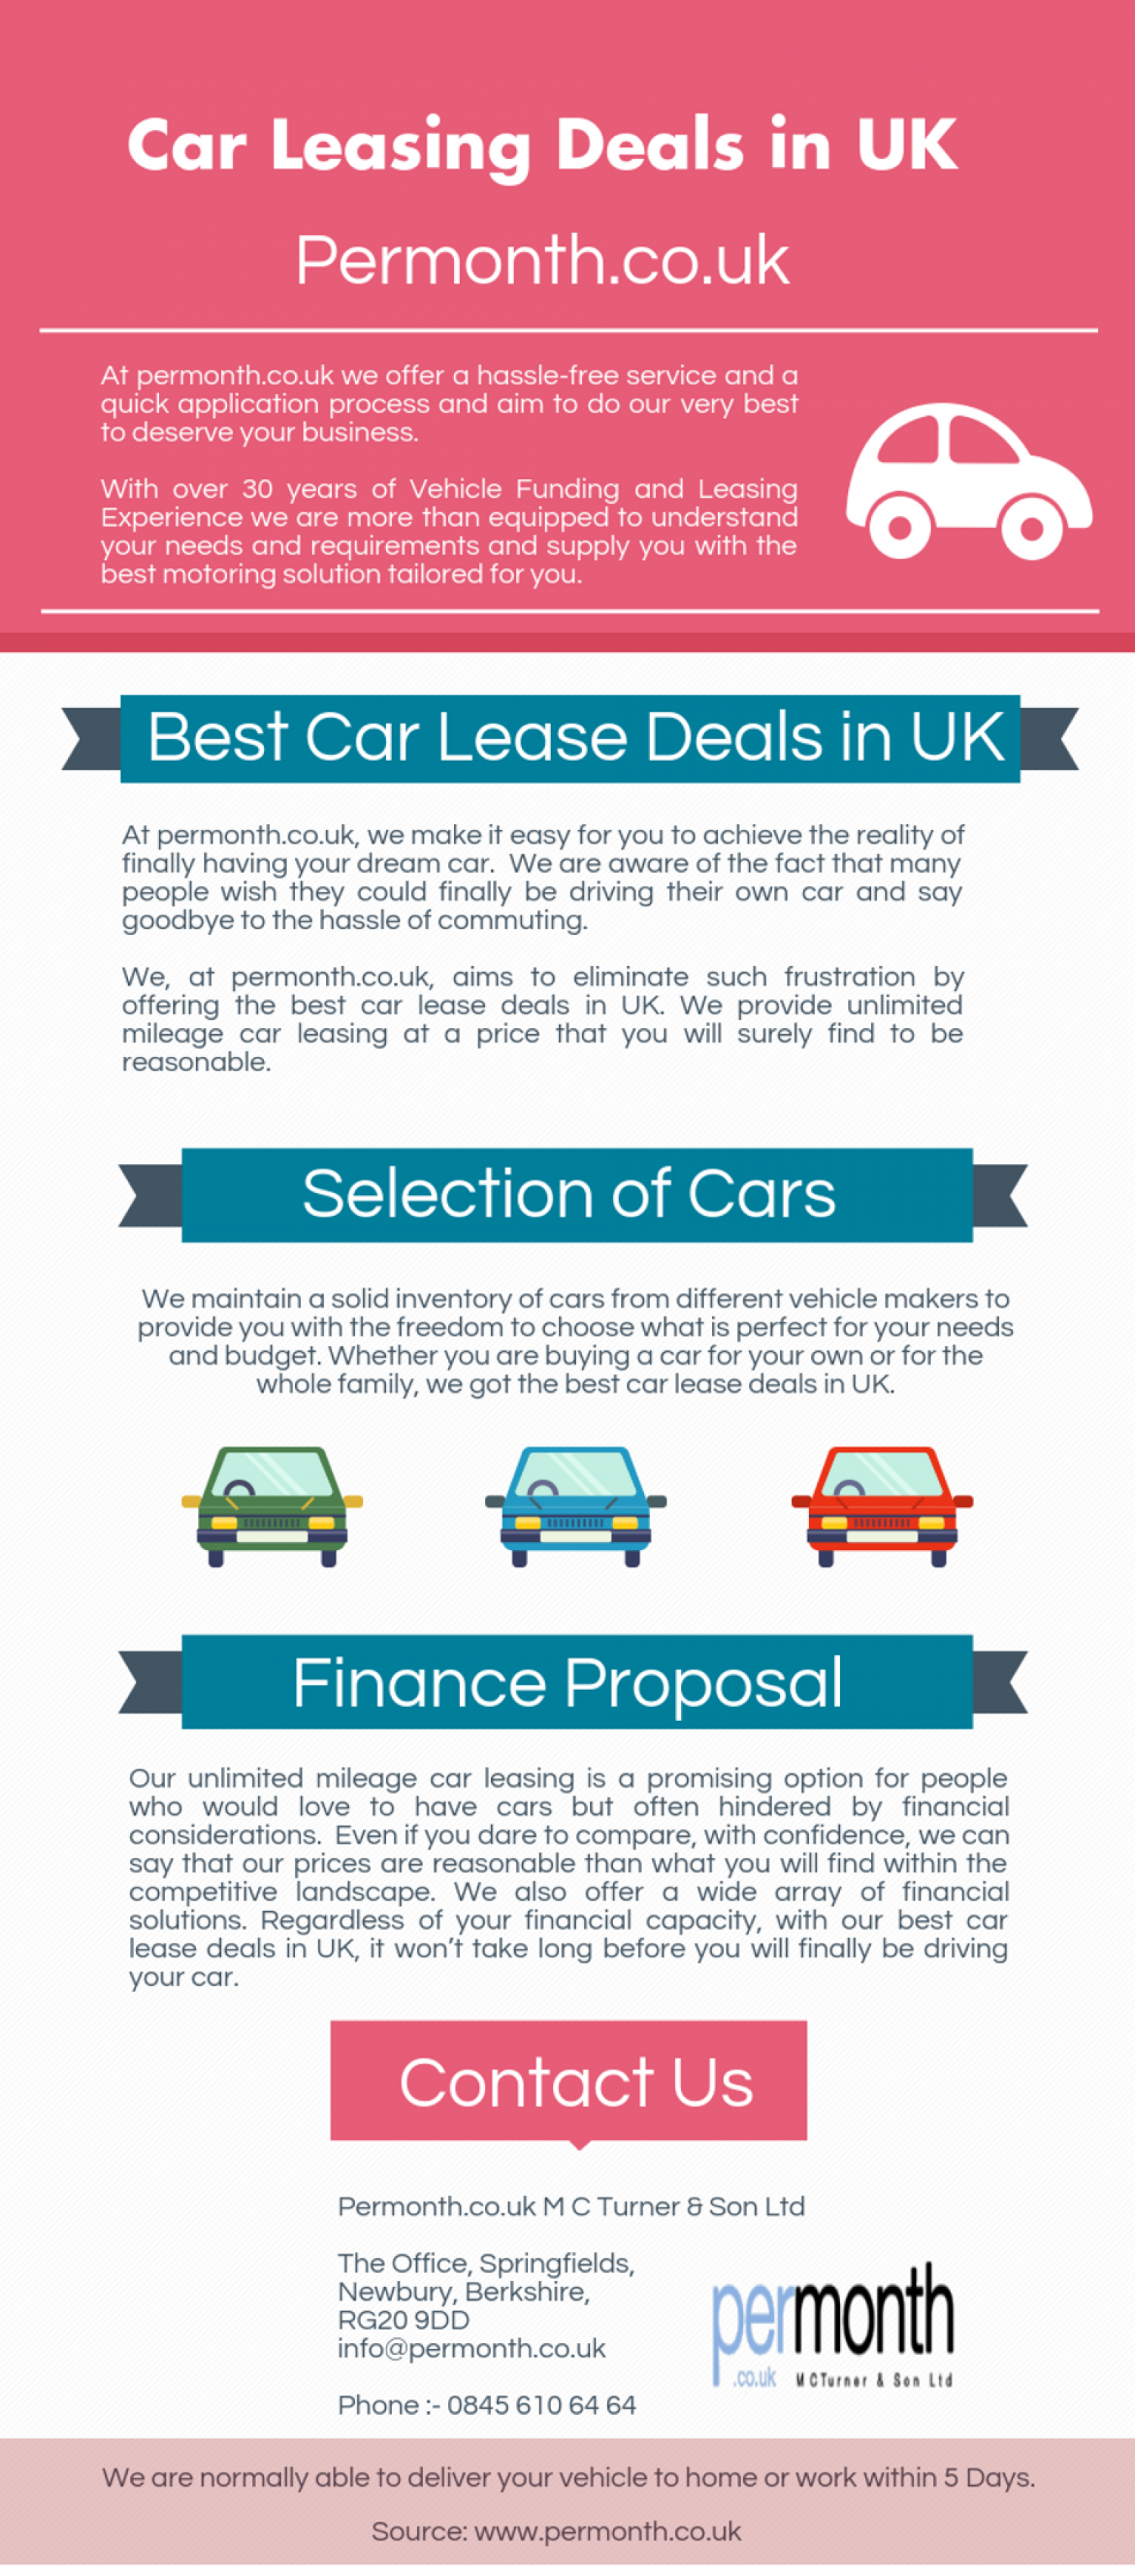 Best Car Leasing Deals in UK at Permonth